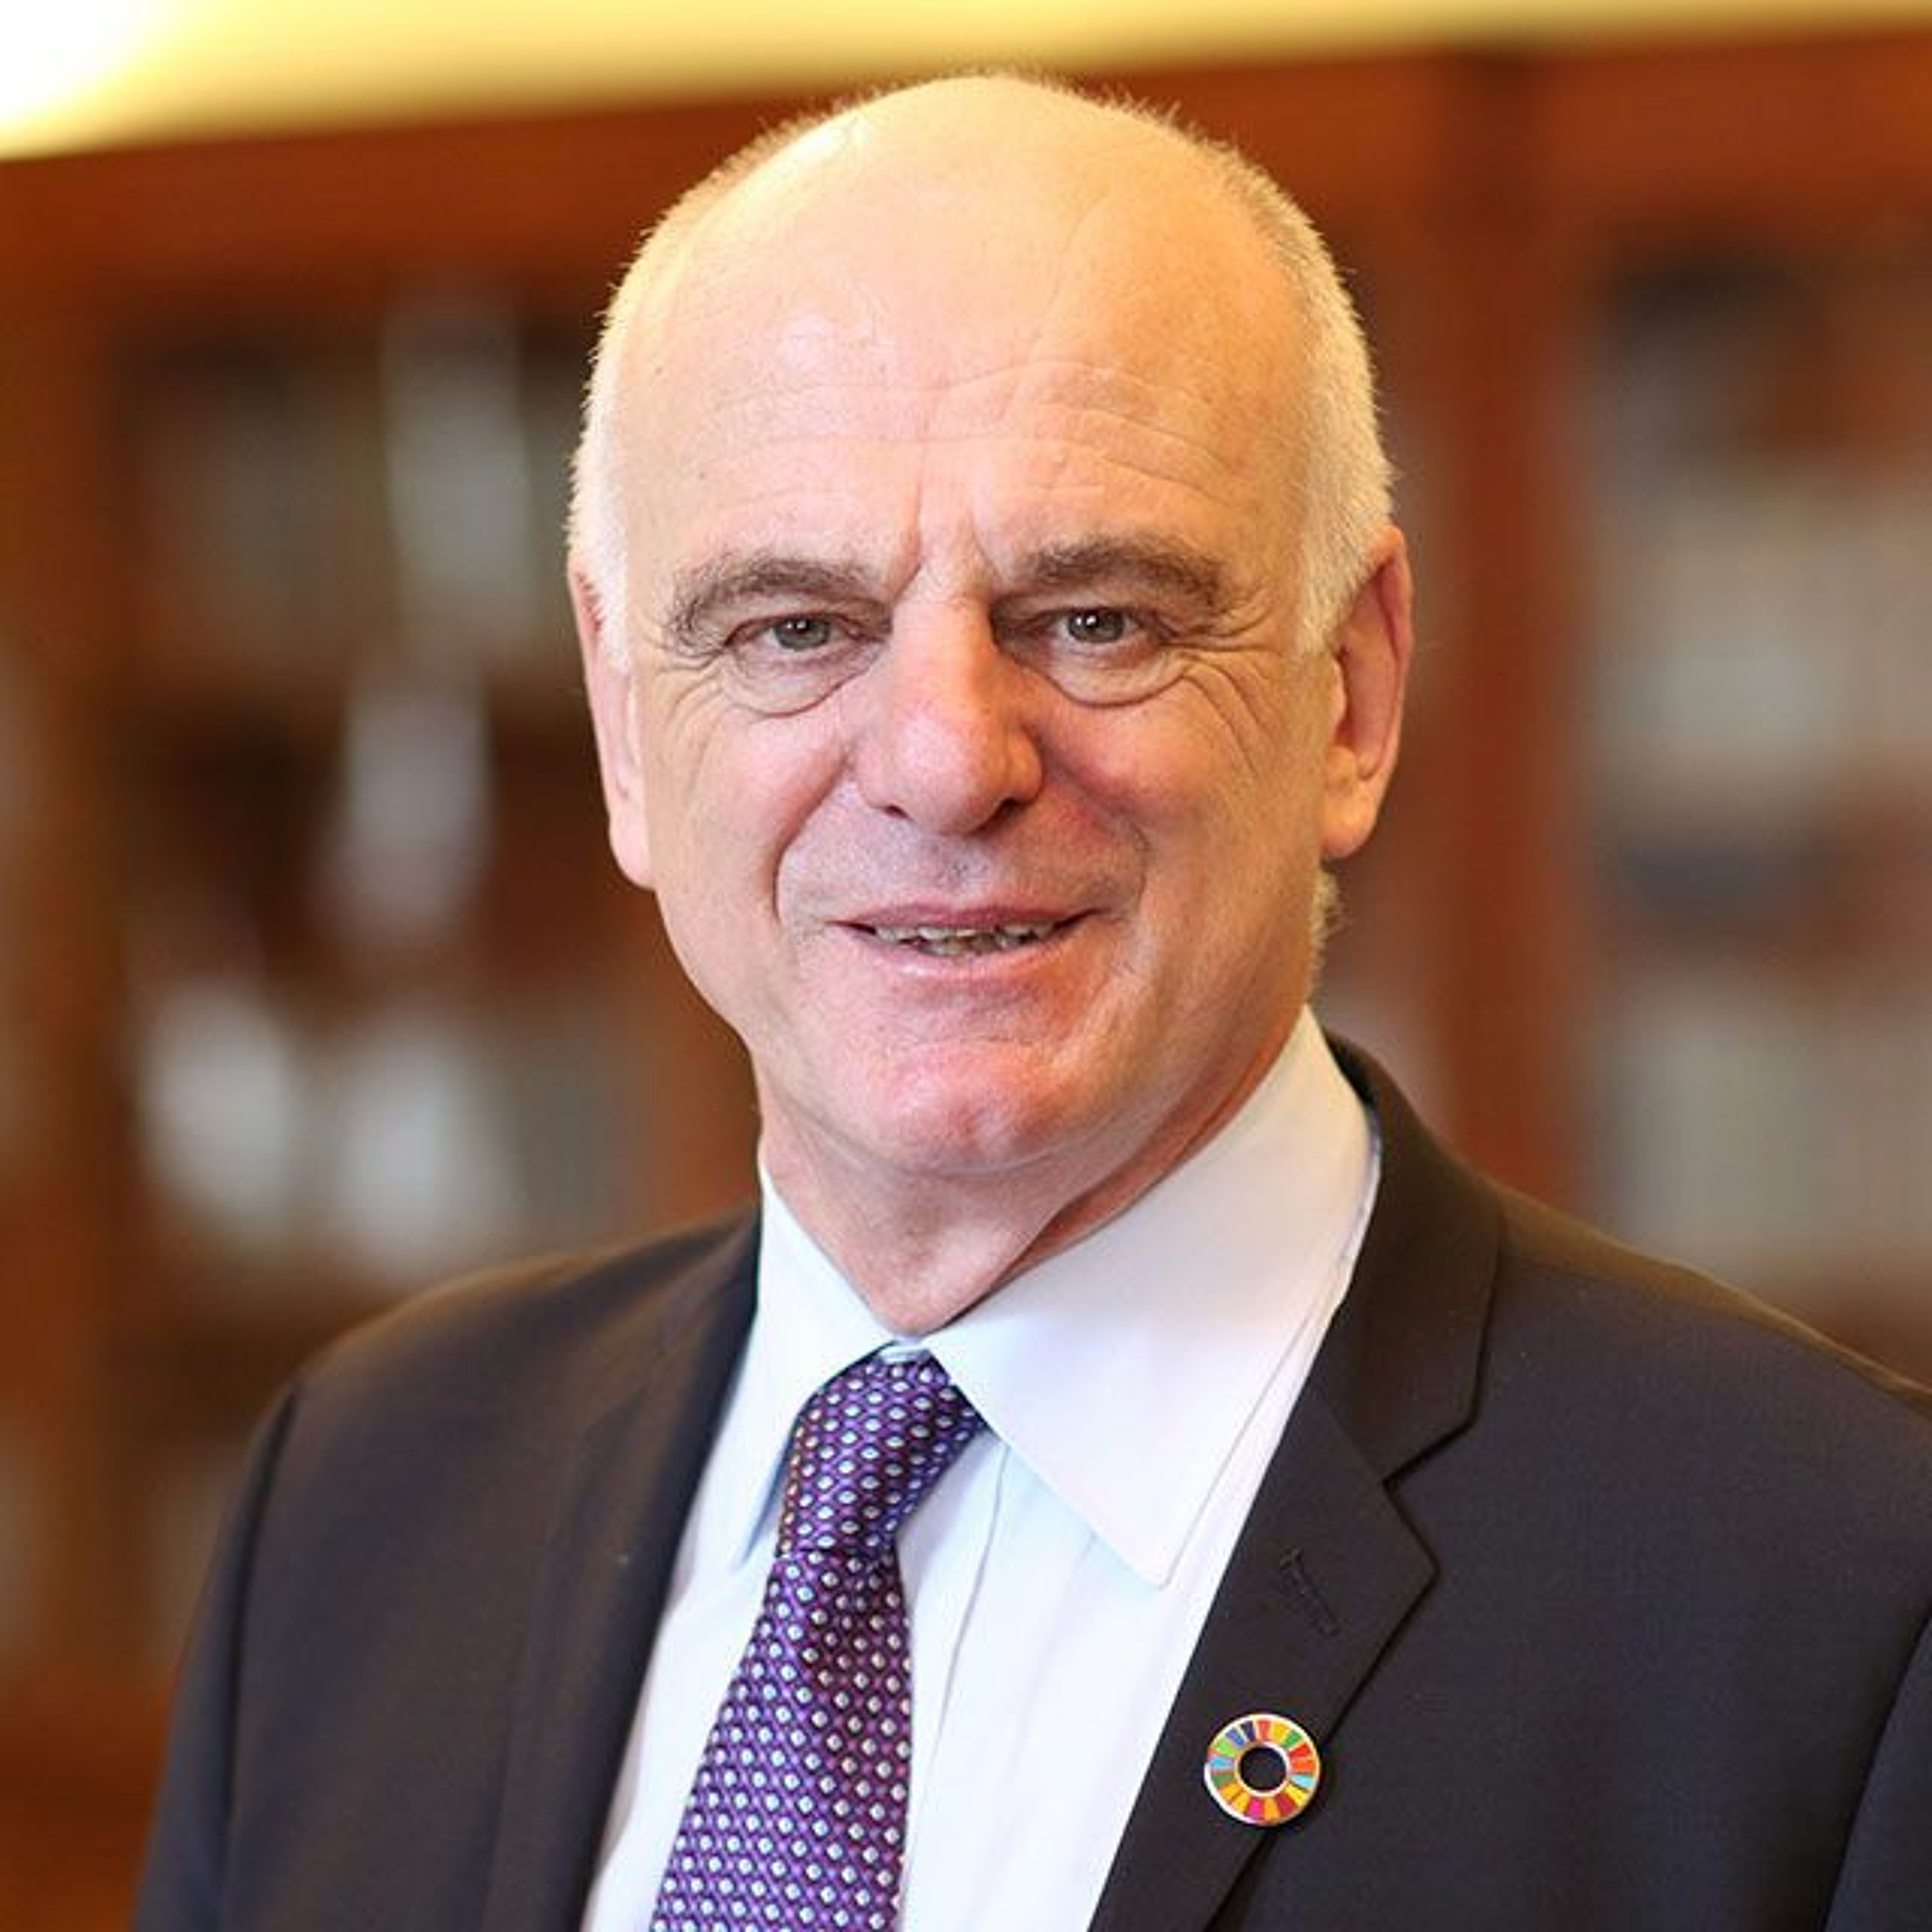 Meet Dr Nabarro – The best candidate for WHO Director General: A Podcast with Dr David Nabarro